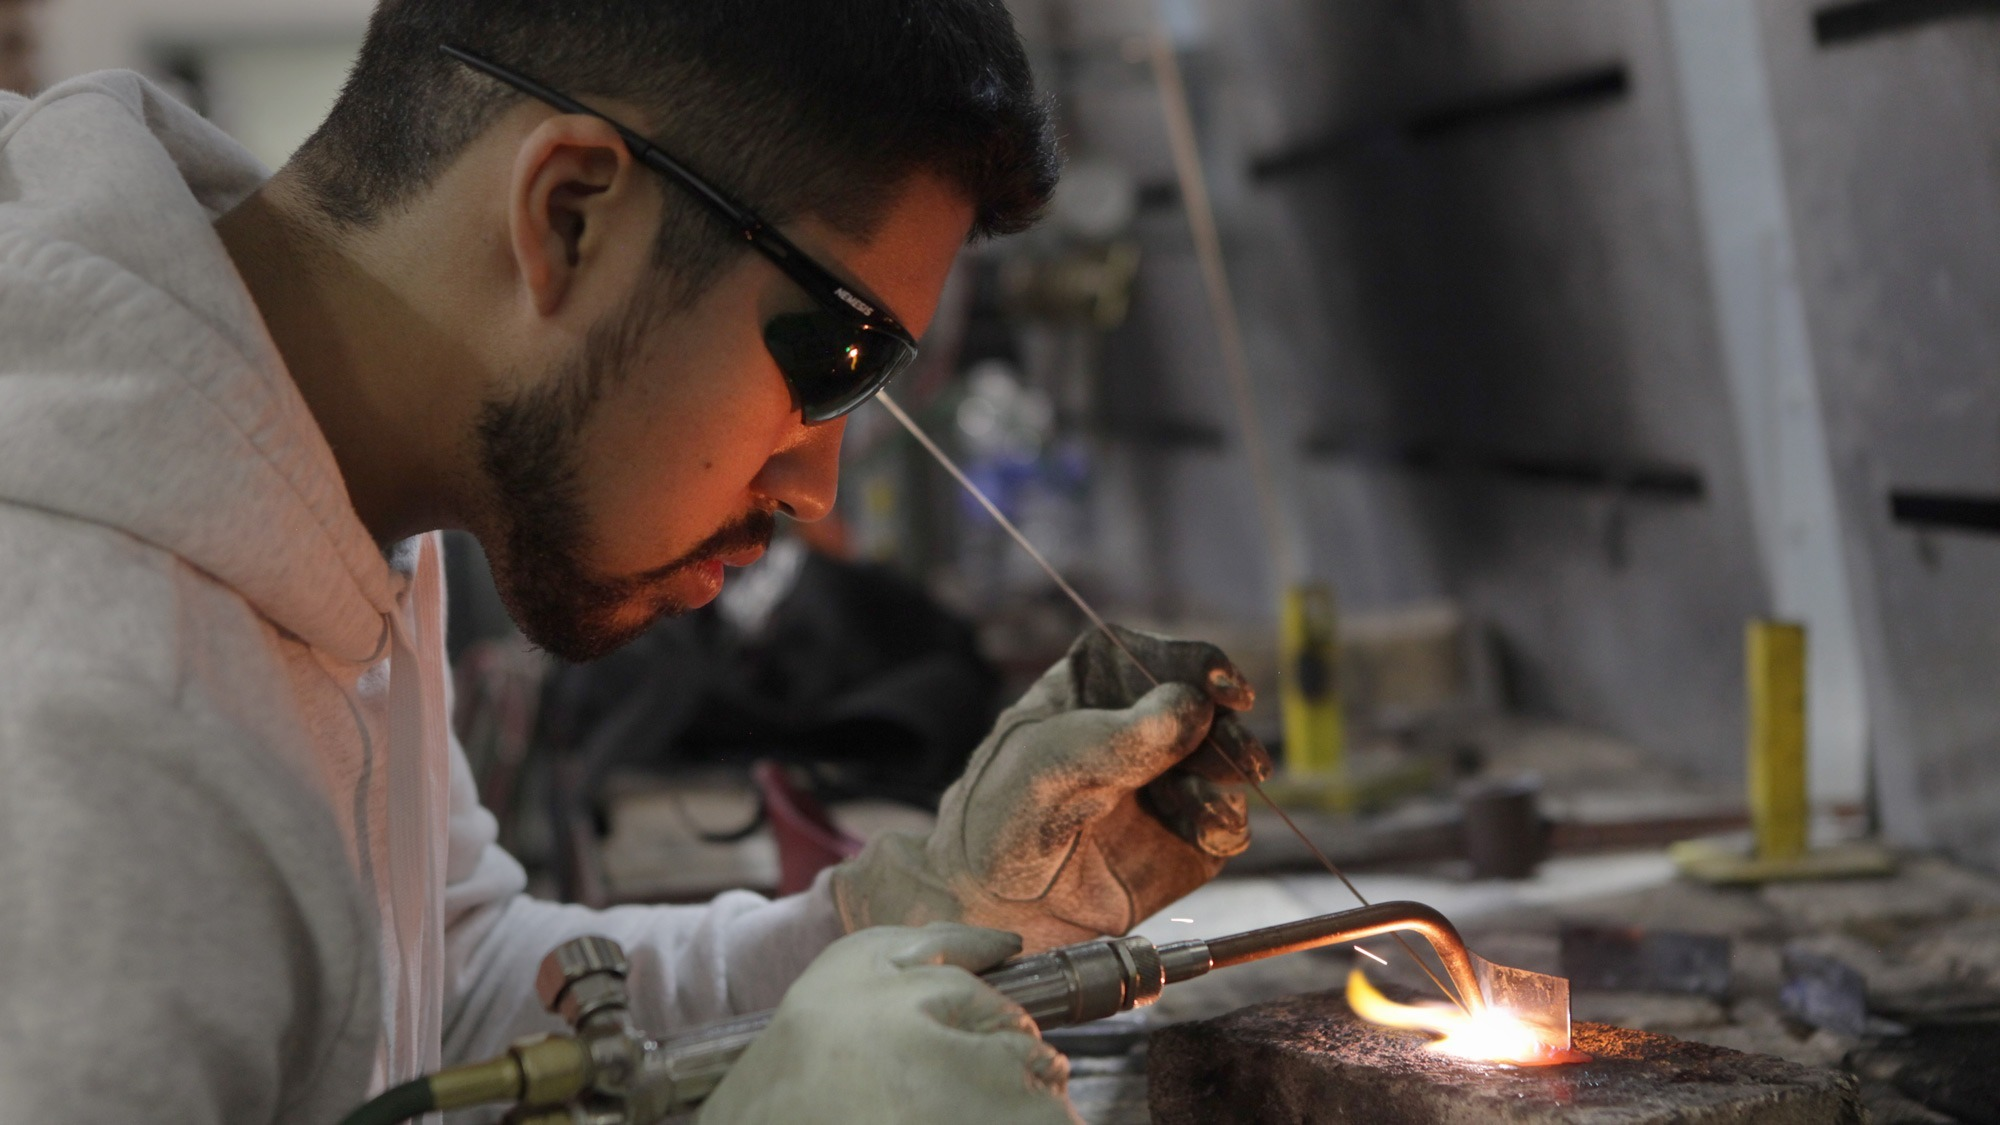 Kristen Luna/Courier Welding student Marco Ruiz, 23 working on a project for class in lab held at IT 137 on Wednesday, January 26, 2017. Ruiz has been studying welding for a year and a half and loves every moment of it.